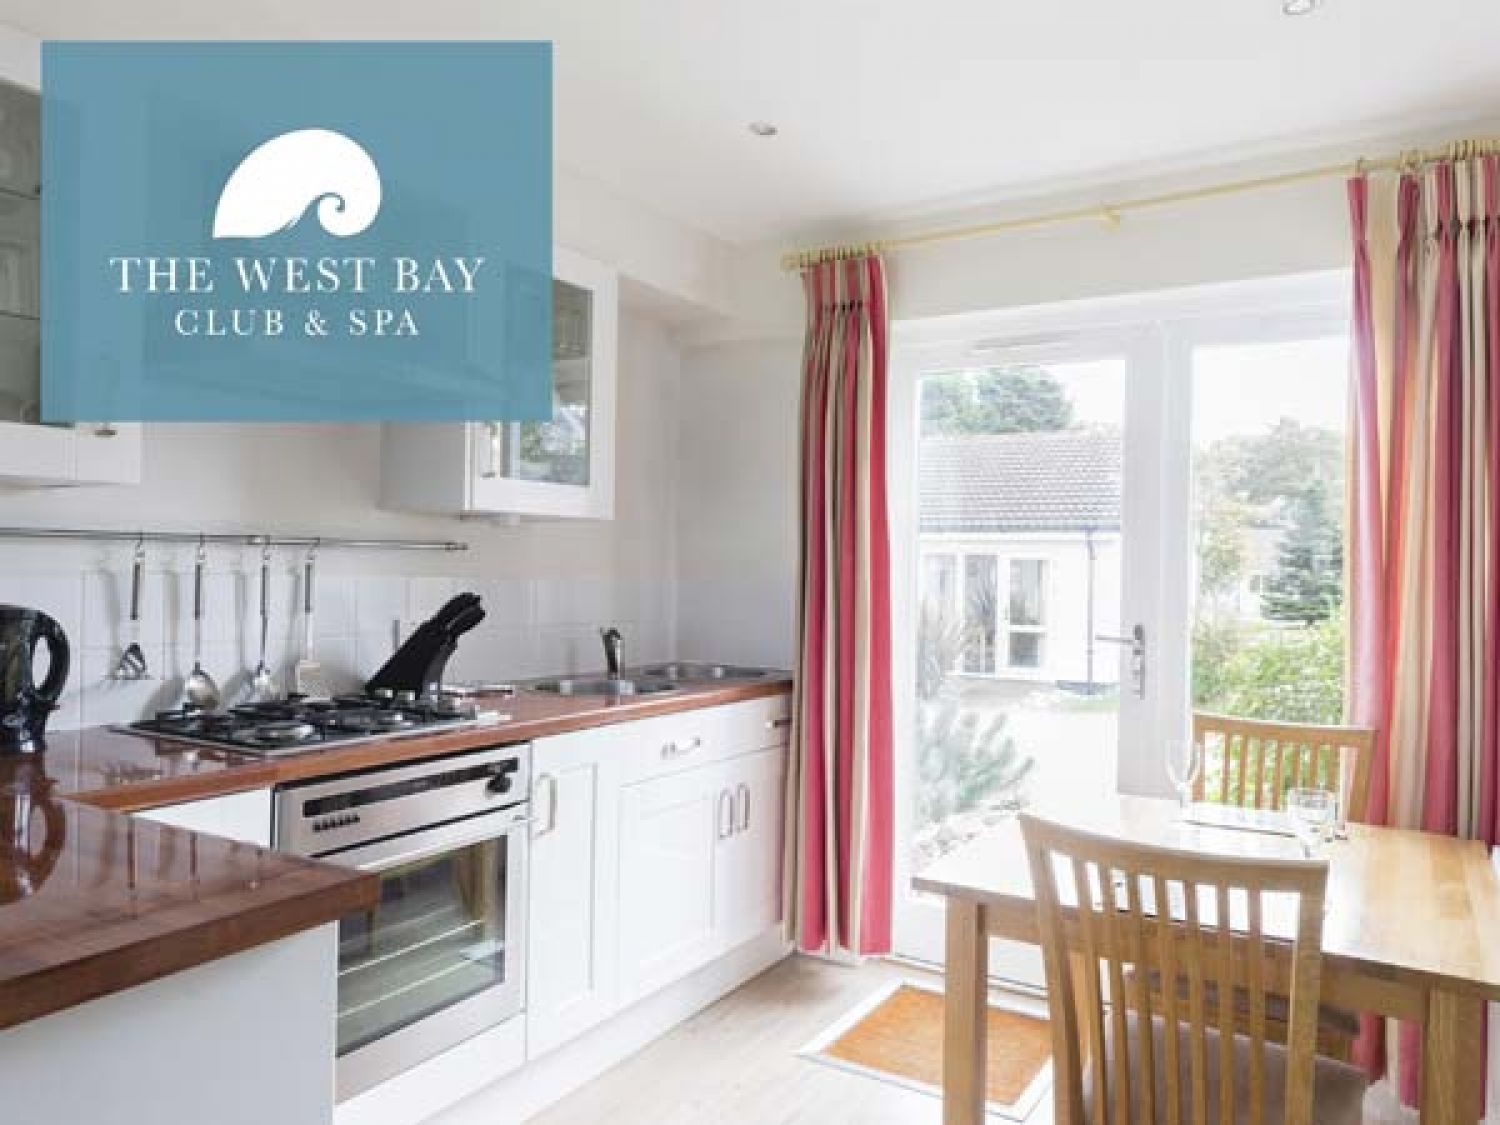 One bedroom cottage at The West Bay Club & Spa - Isle of Wight & Hampshire - 943761 - photo 1